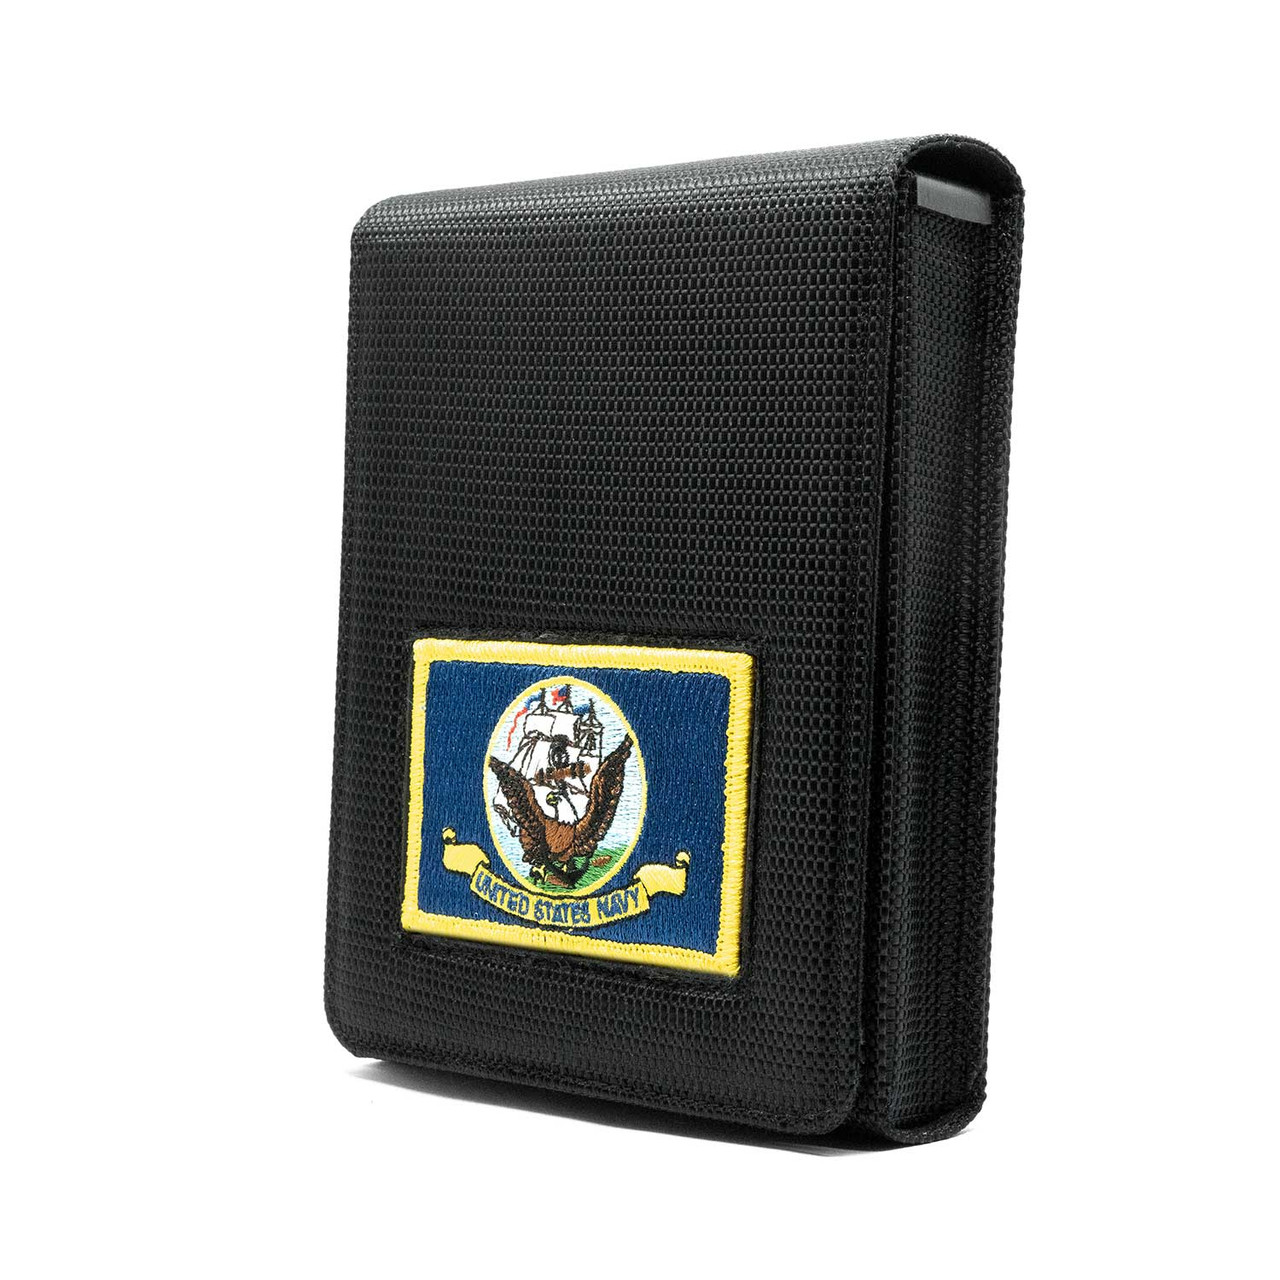 FNS-9C Navy Tactical Patch Holster